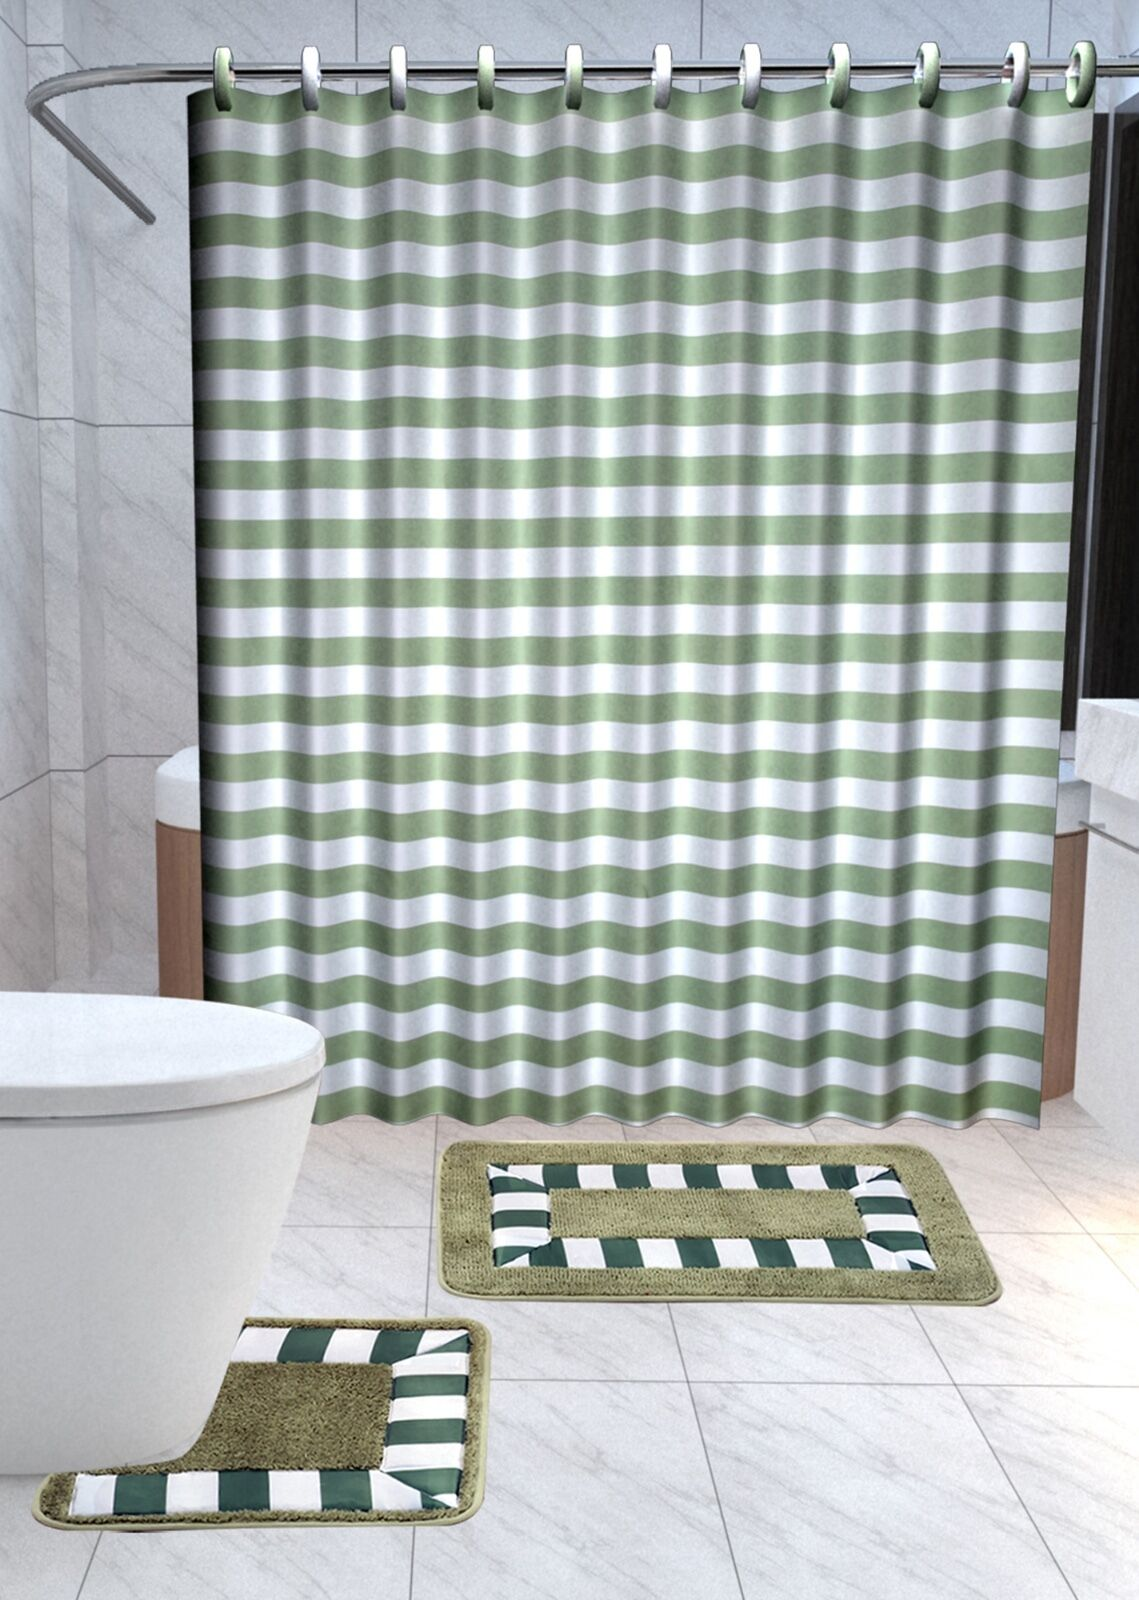 13pc Striped Sage Green Printed Design Bathroom Fabric Shower Curtain Set Hook